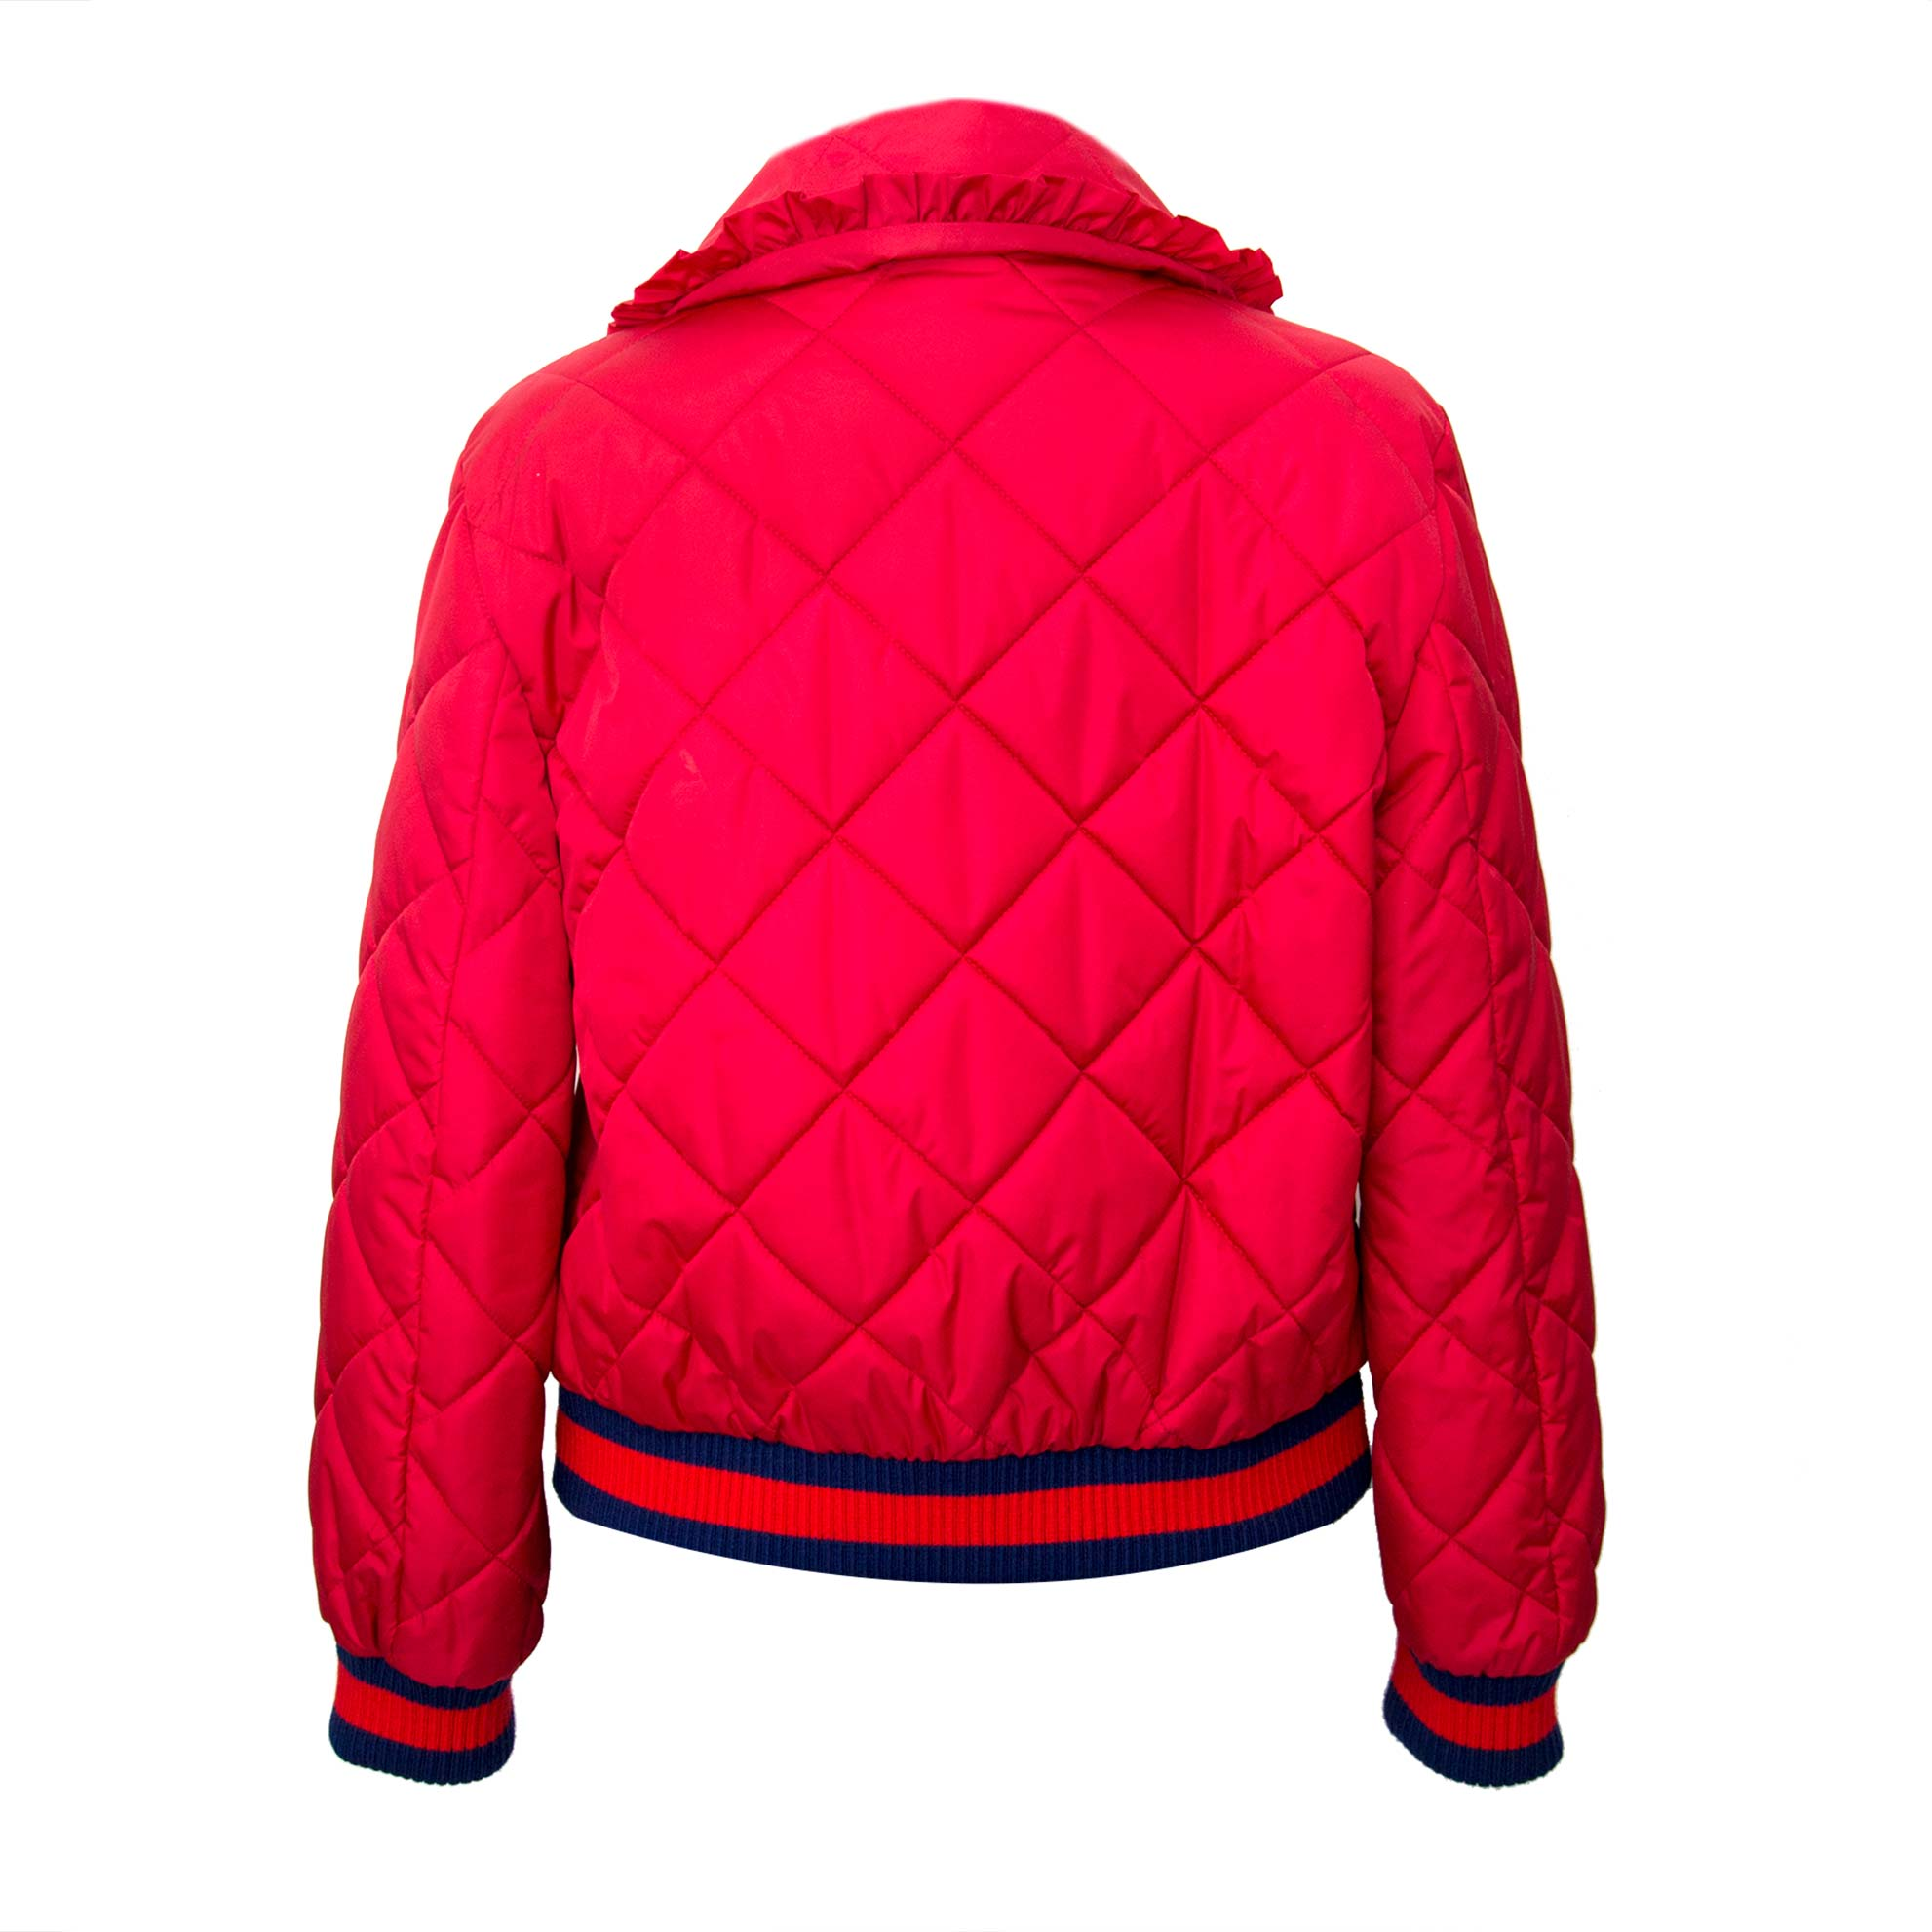 looking for a gucci quilted shell bomber jacket? Buy it now at labellov.com for the best price